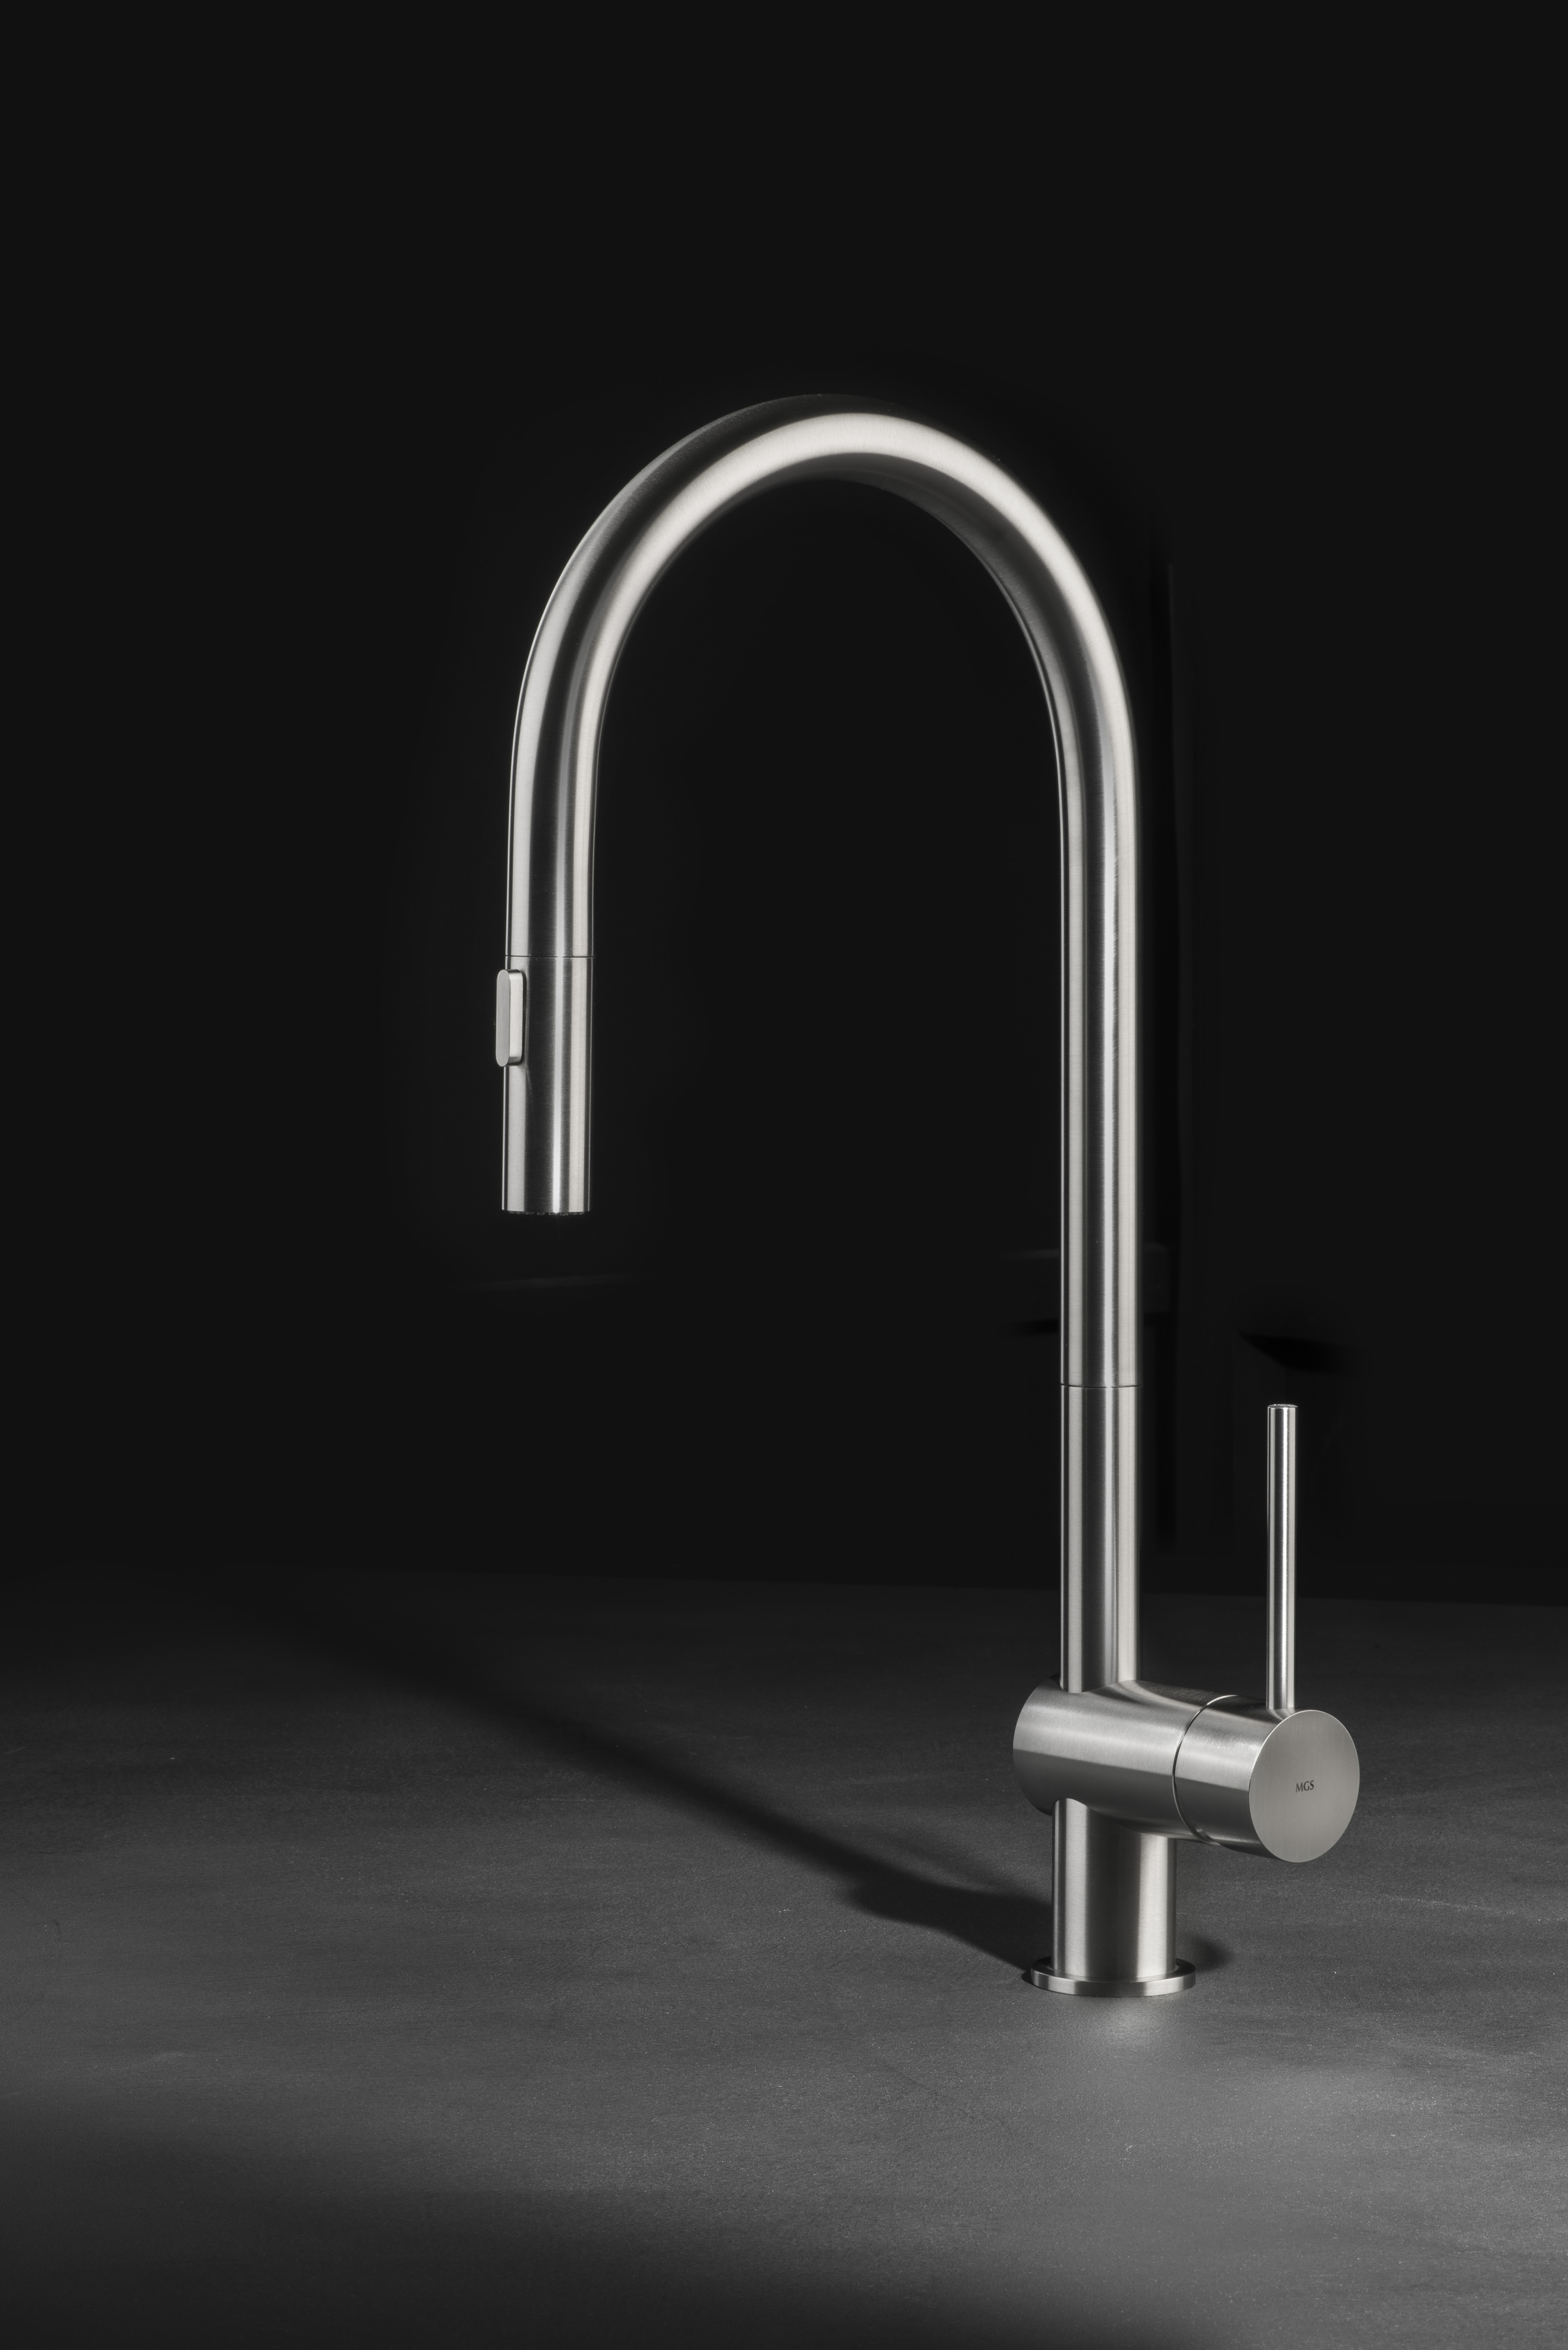 stainless steel faucets stainless steel kitchen faucet black stainless kitchen faucet stainless steel kitchen tap black stainless steel kitchen faucet stainless steel bathroom faucet